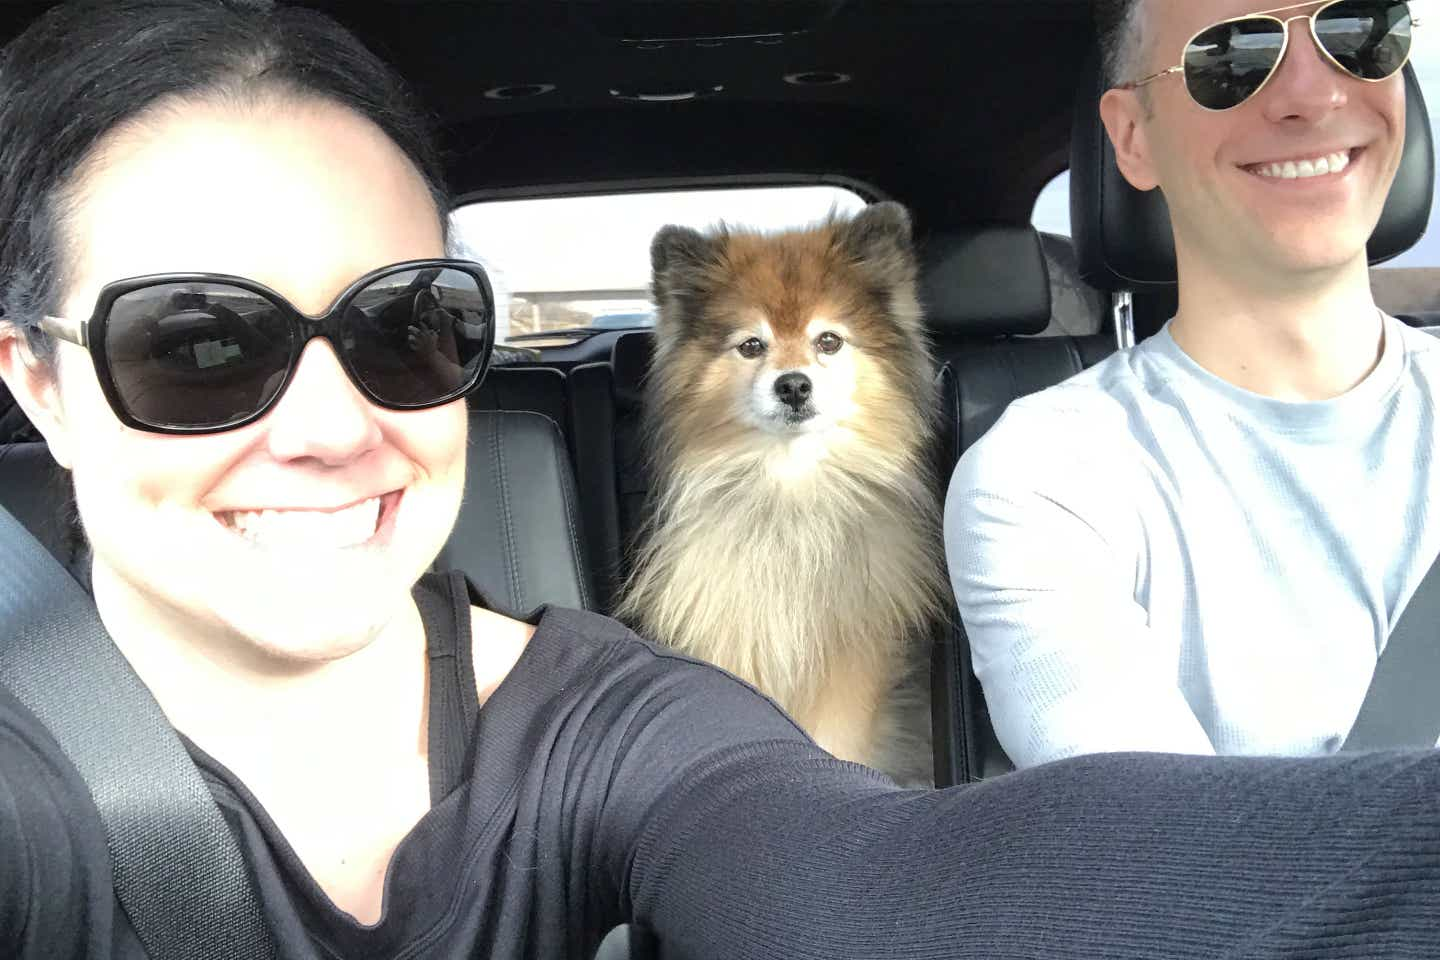 Authors, Lauren Layne and Anthony LeDonne, sit in their vehicle with Bailey the Pomeranian as they venture on their road trip.